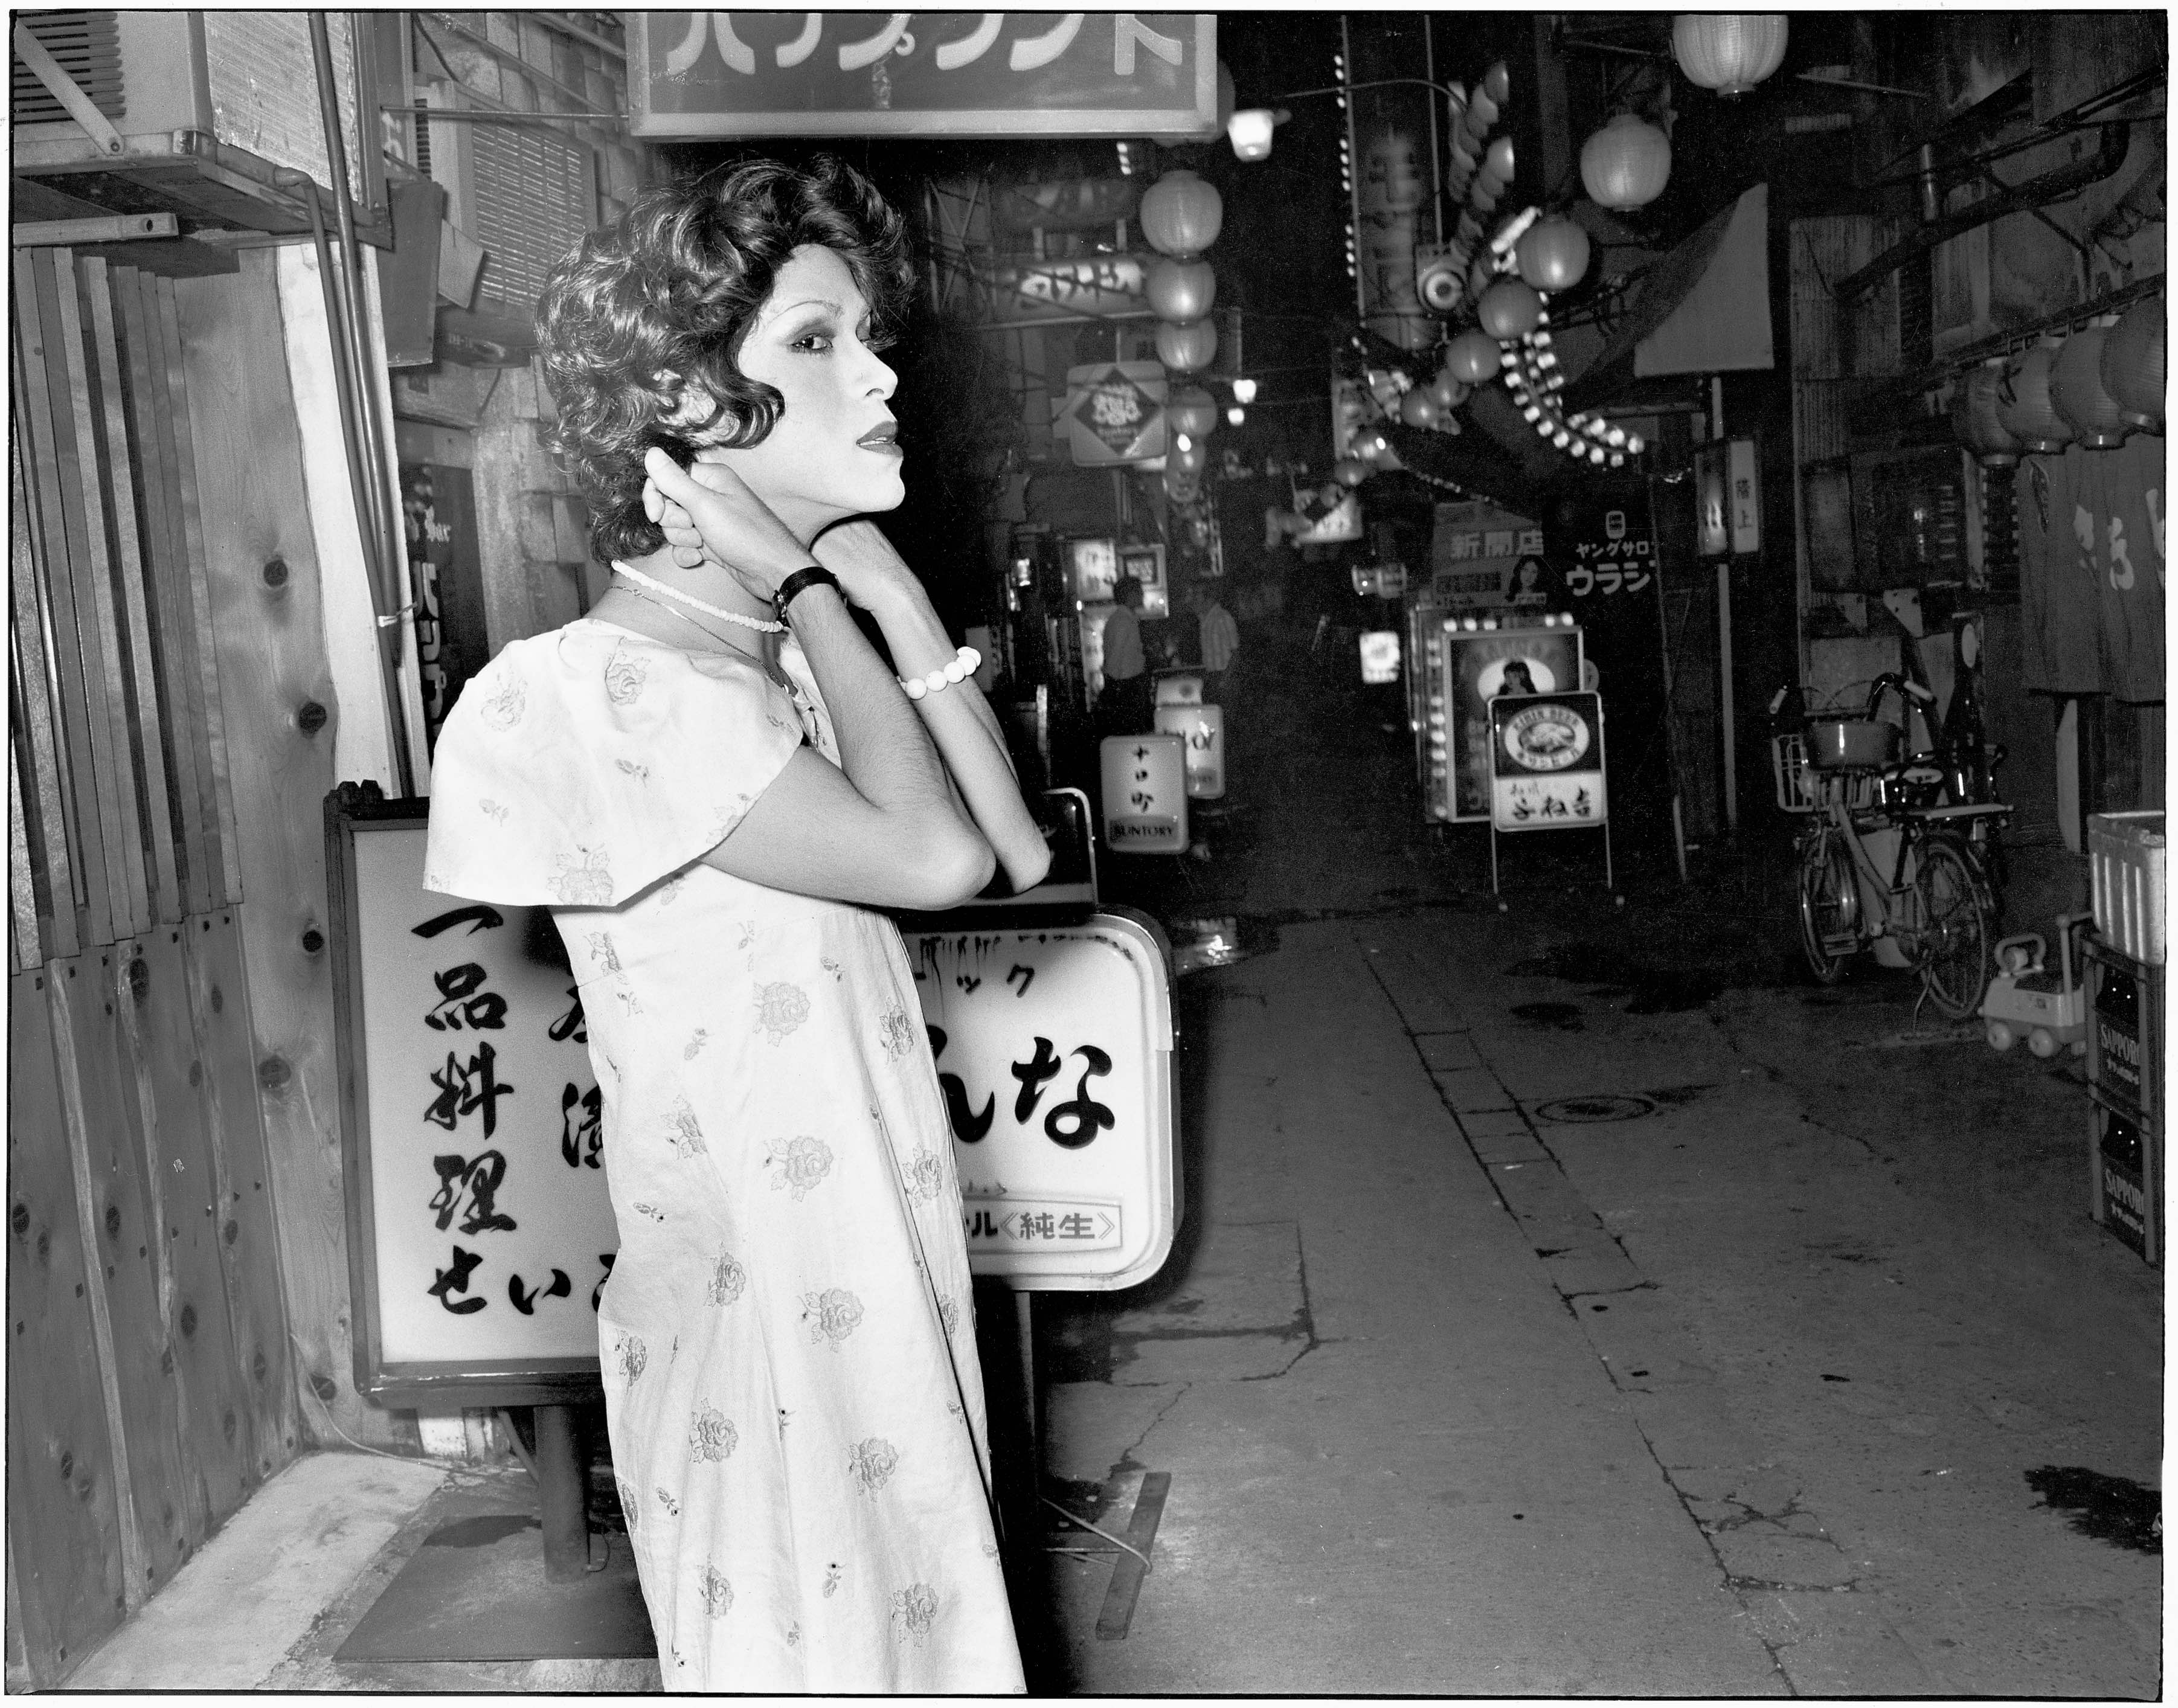 Even though there's no sign of any customers... near Ikebukuro, Hikarimachi Ohashi, 1975. From the series Flash Up, 1975 -1979 Collection of Mark Pearson, Zen Foto Gallery